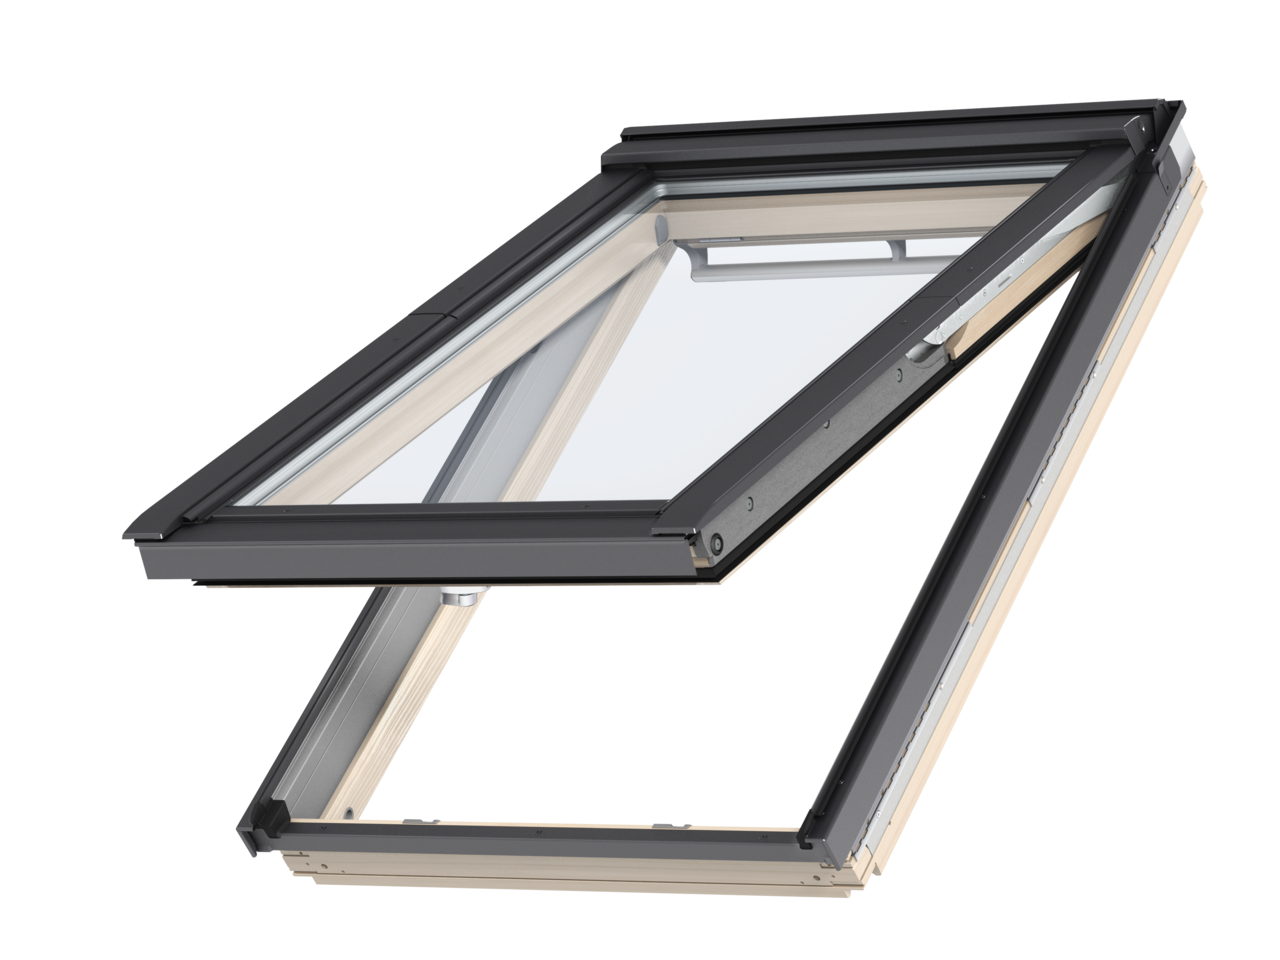 Velux pine top hung roof window gpl3070 for Velux glass